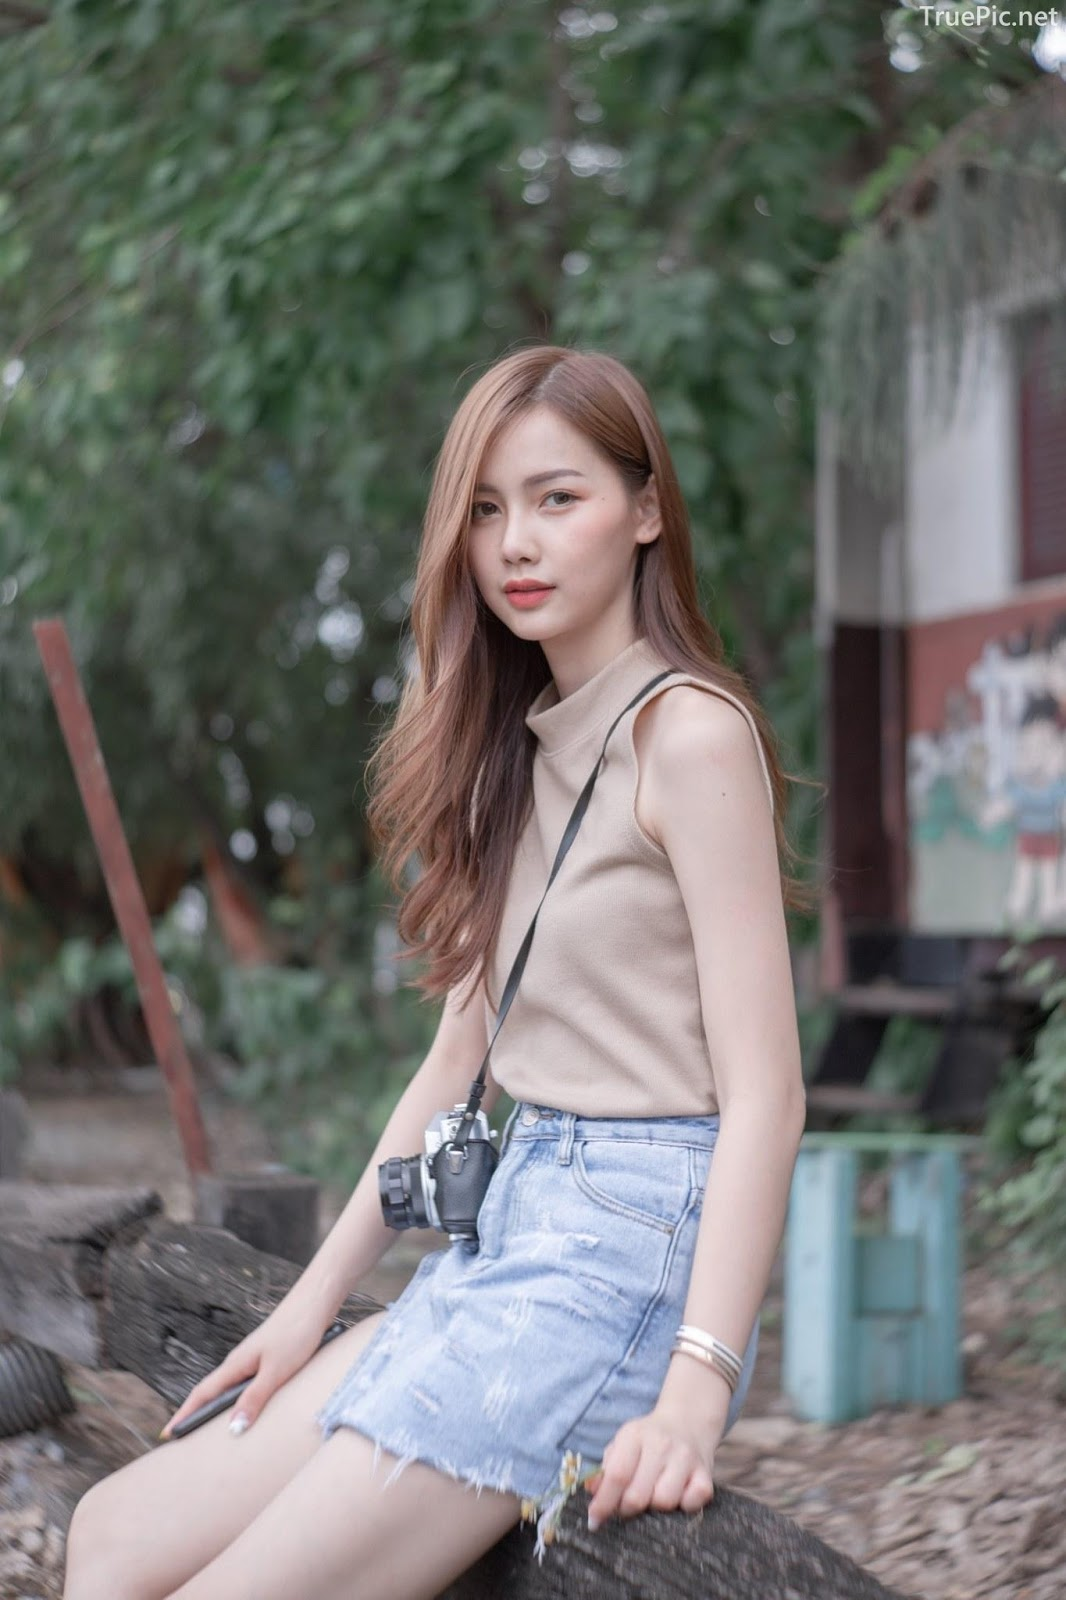 Thailand beautiful model - Pla Kewalin Udomaksorn - A beautiful morning with a cute girl - Picture 5